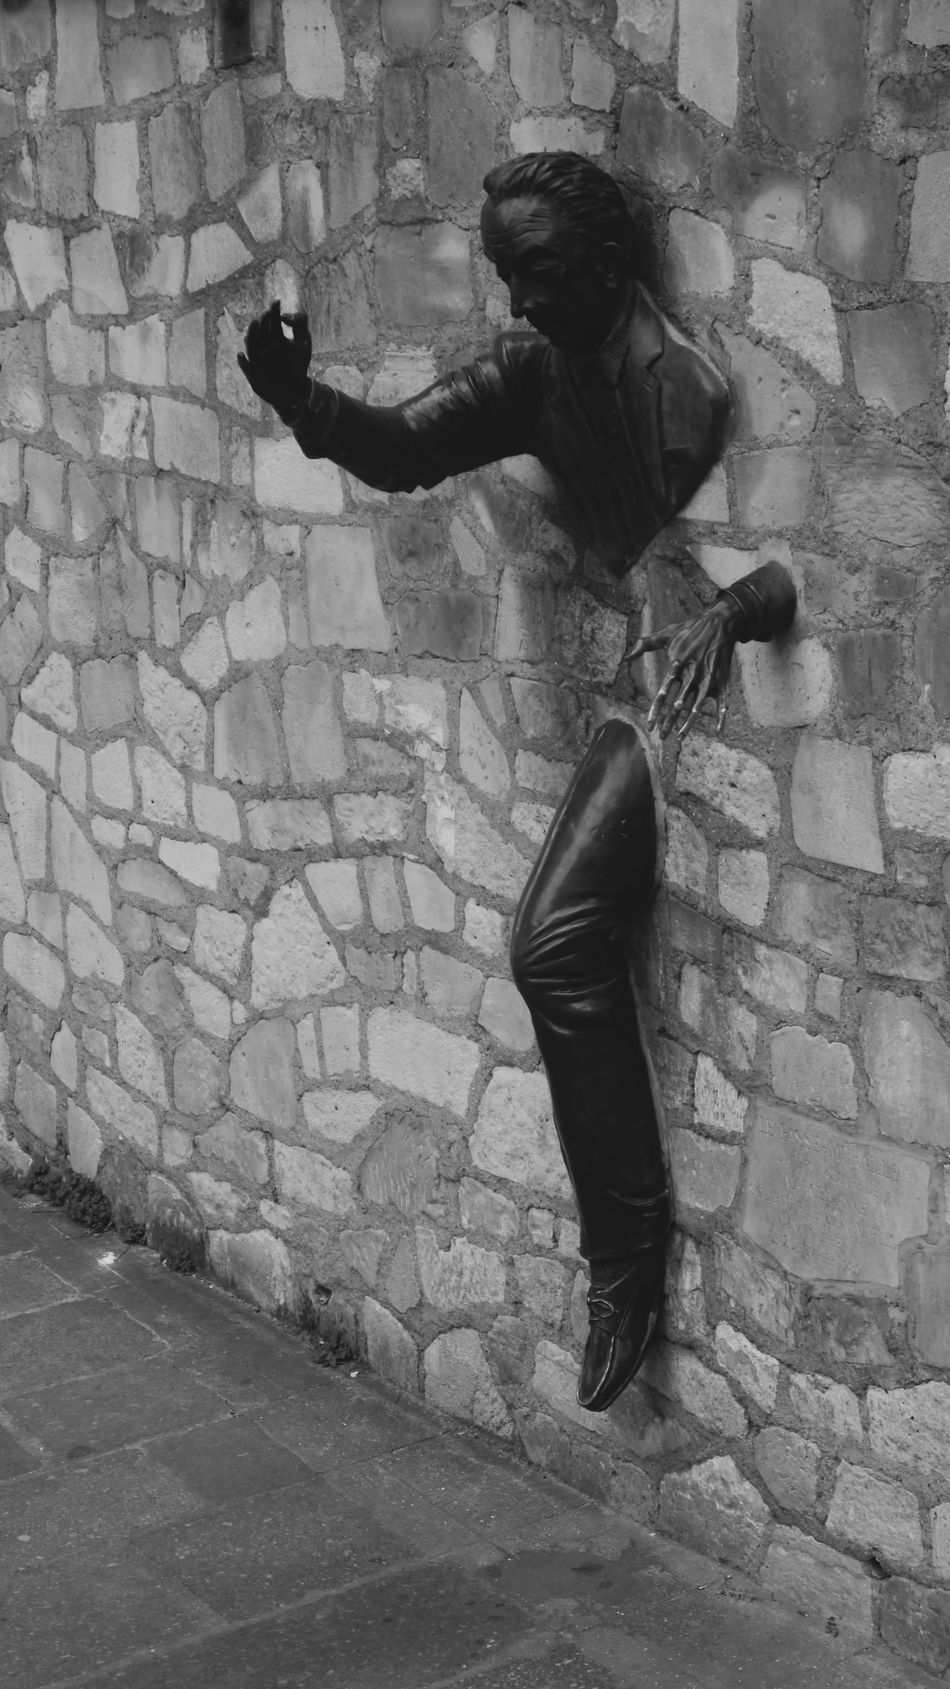 Brick Wall Escape Escape From Reality Escape Of The Dark Dimension Escape The City Exit Full Length Lifestyles Man Panic Reality Standing Statue Streetart Wall EyeEmNewHere Break The Mold Art Is Everywhere TCPM